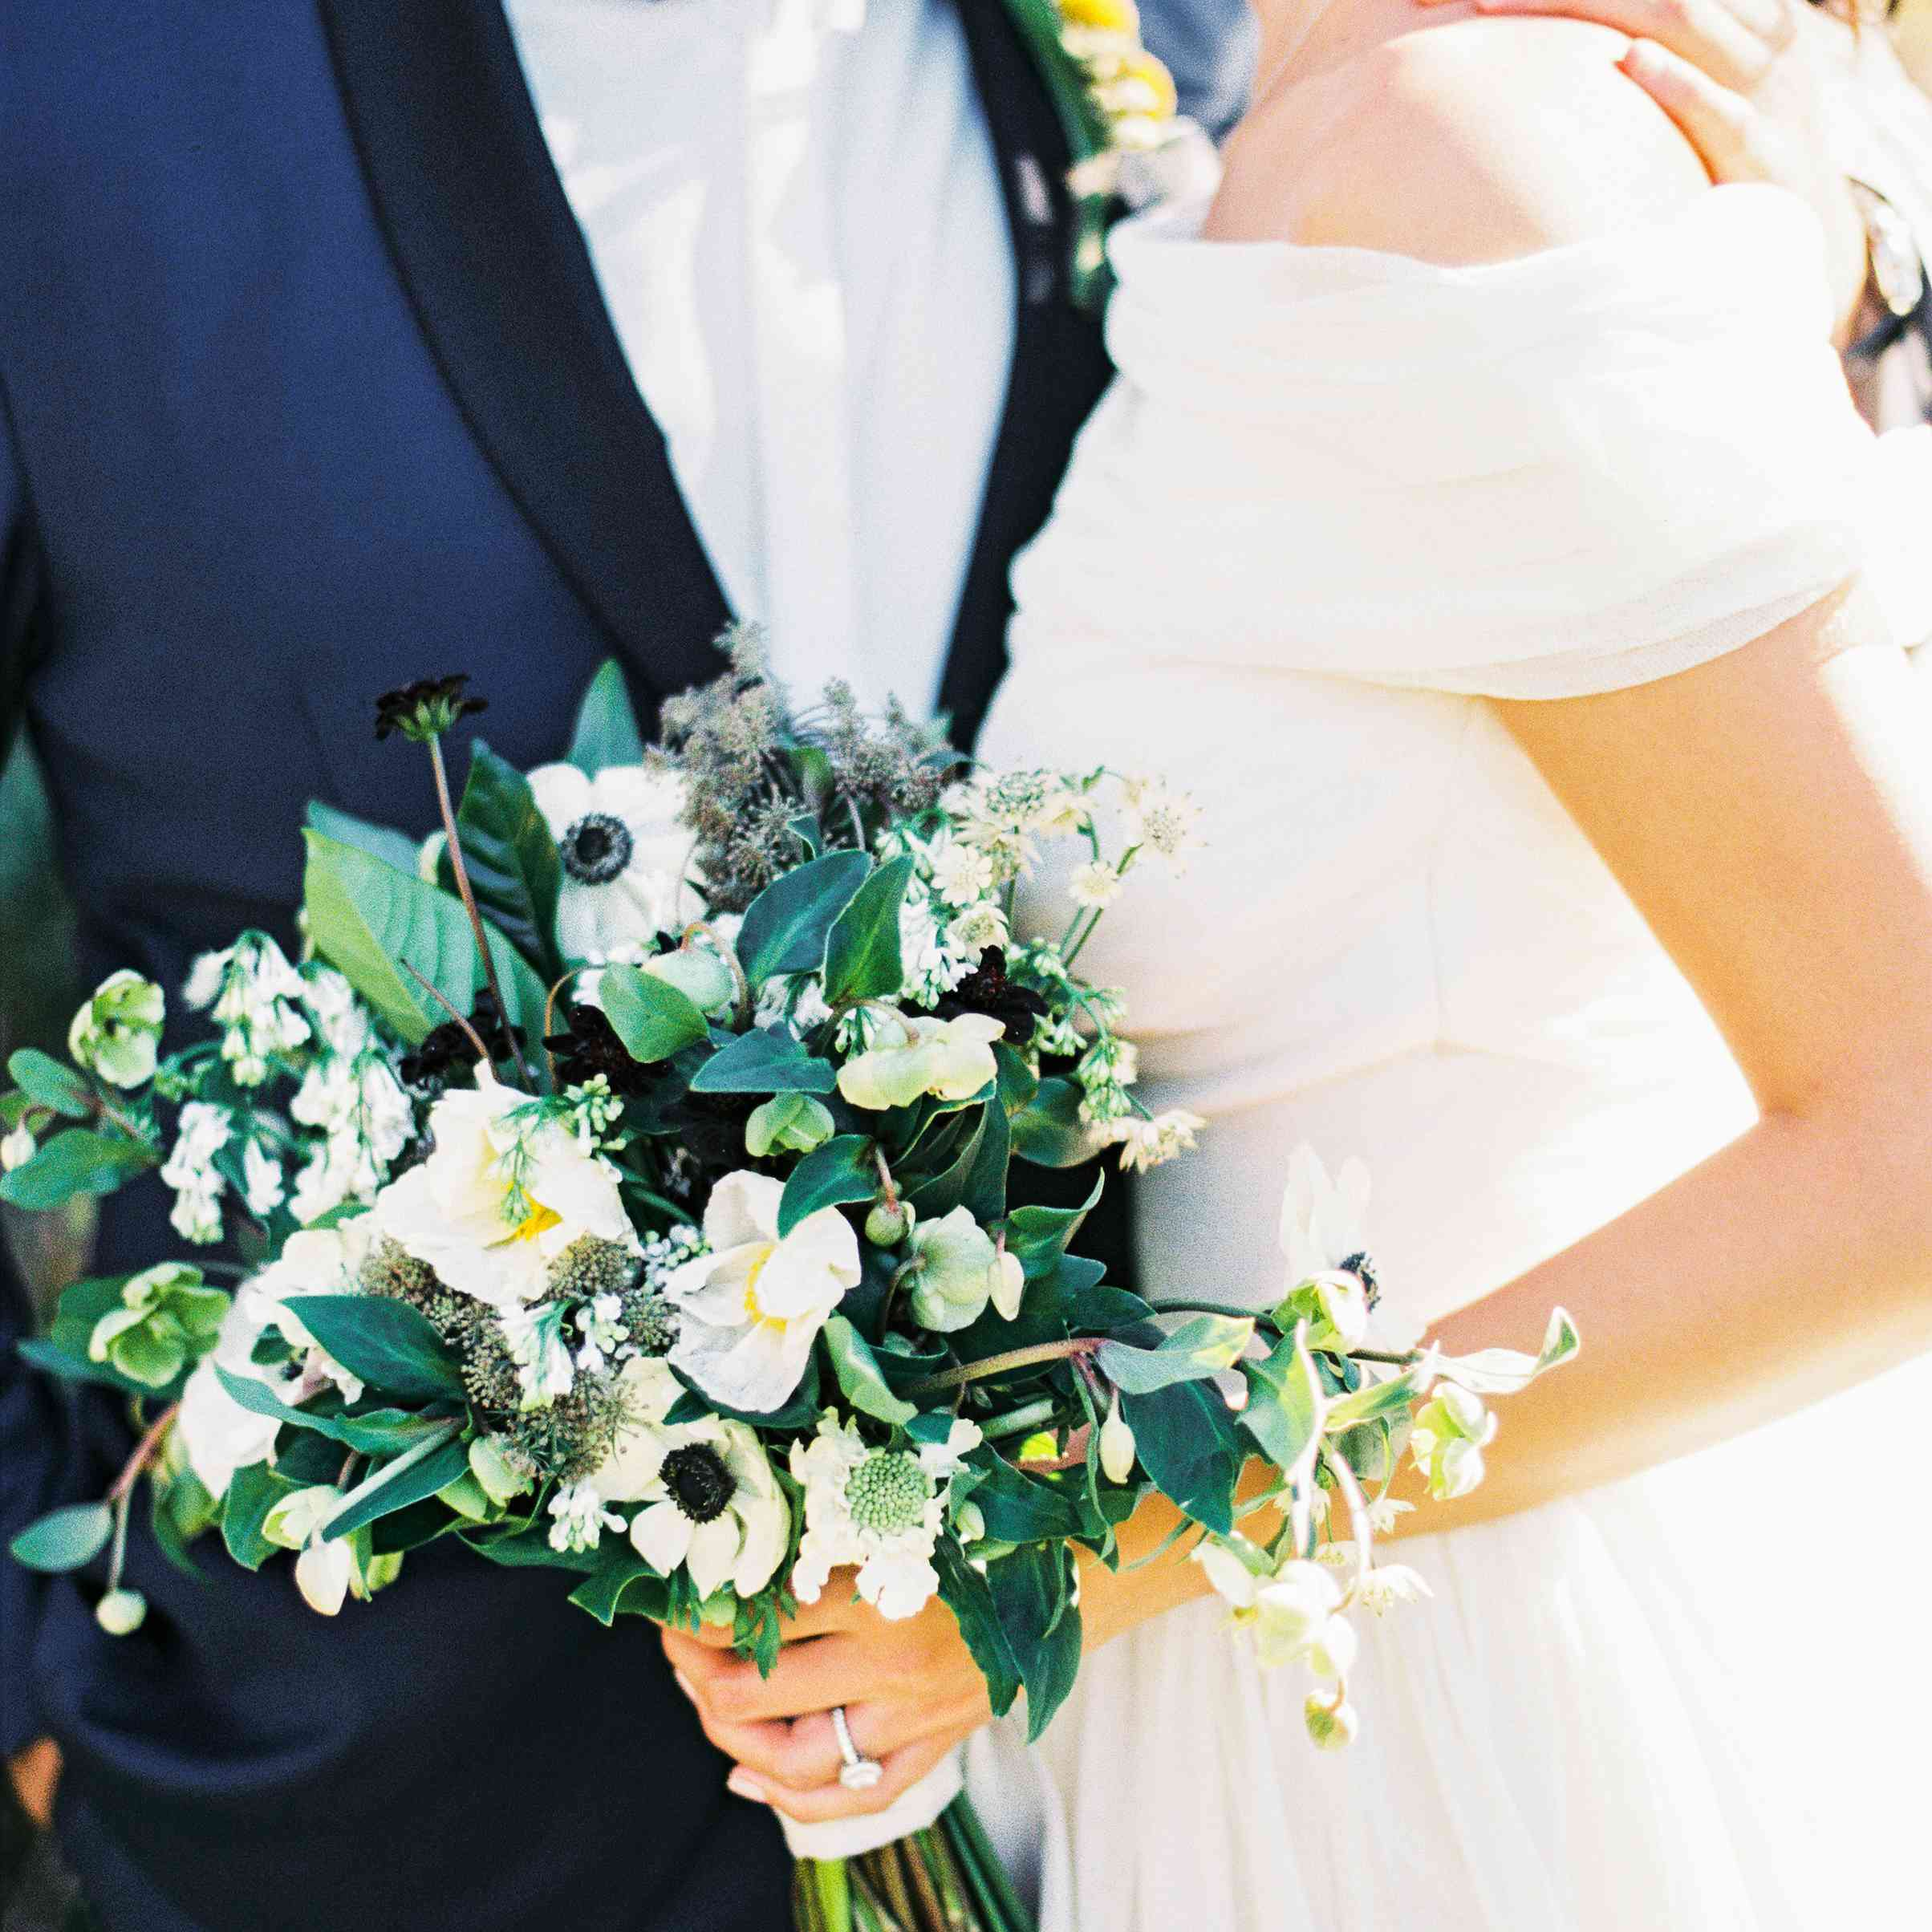 Lush Bridal Bouquet With Anemones